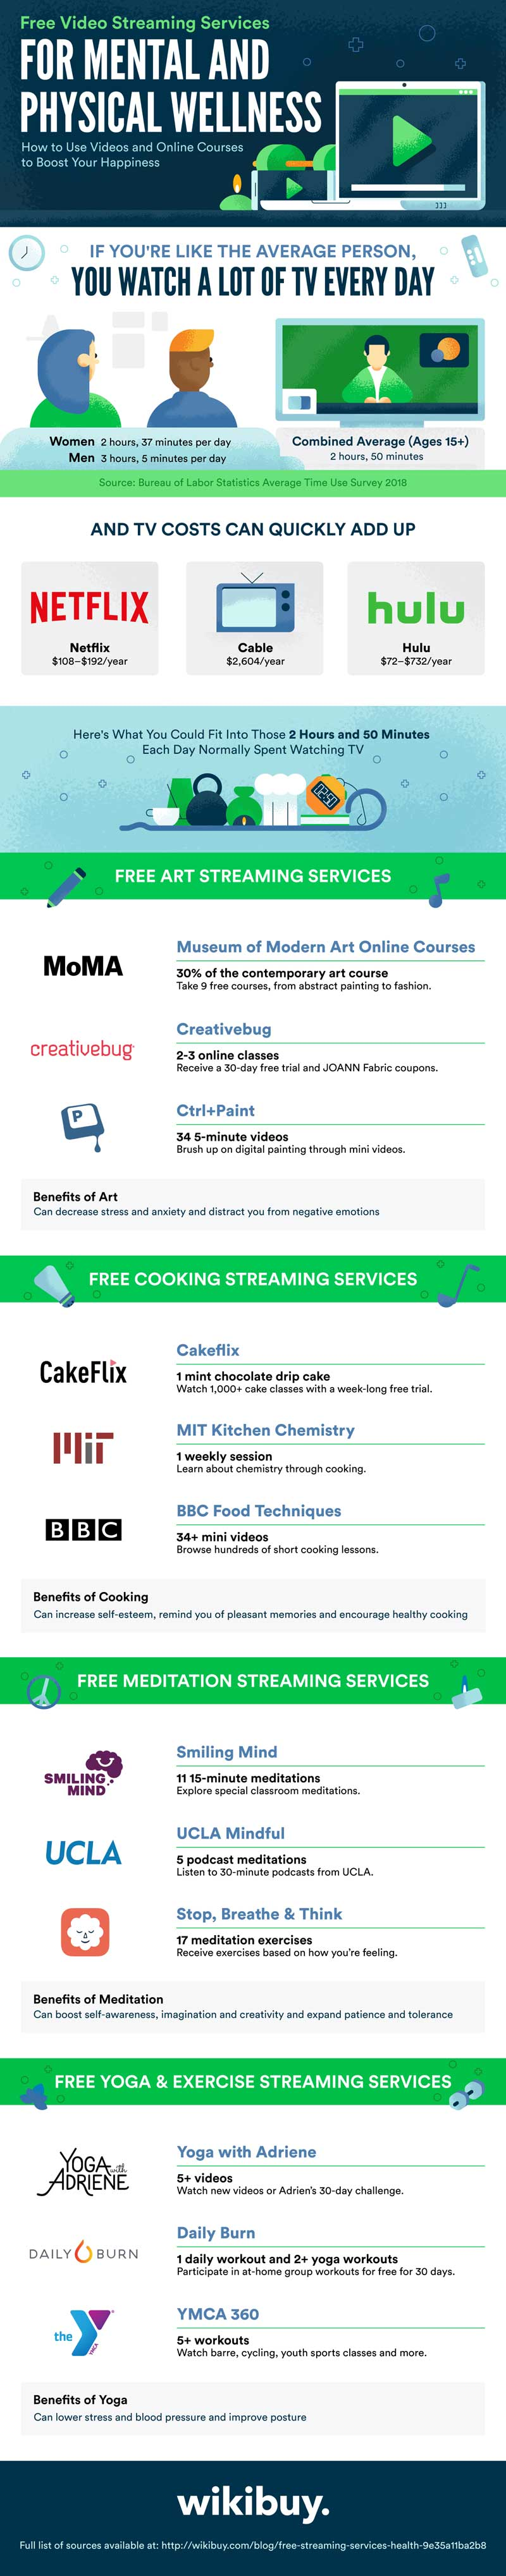 Free Video Streaming Services for Mental & Physical Wellness